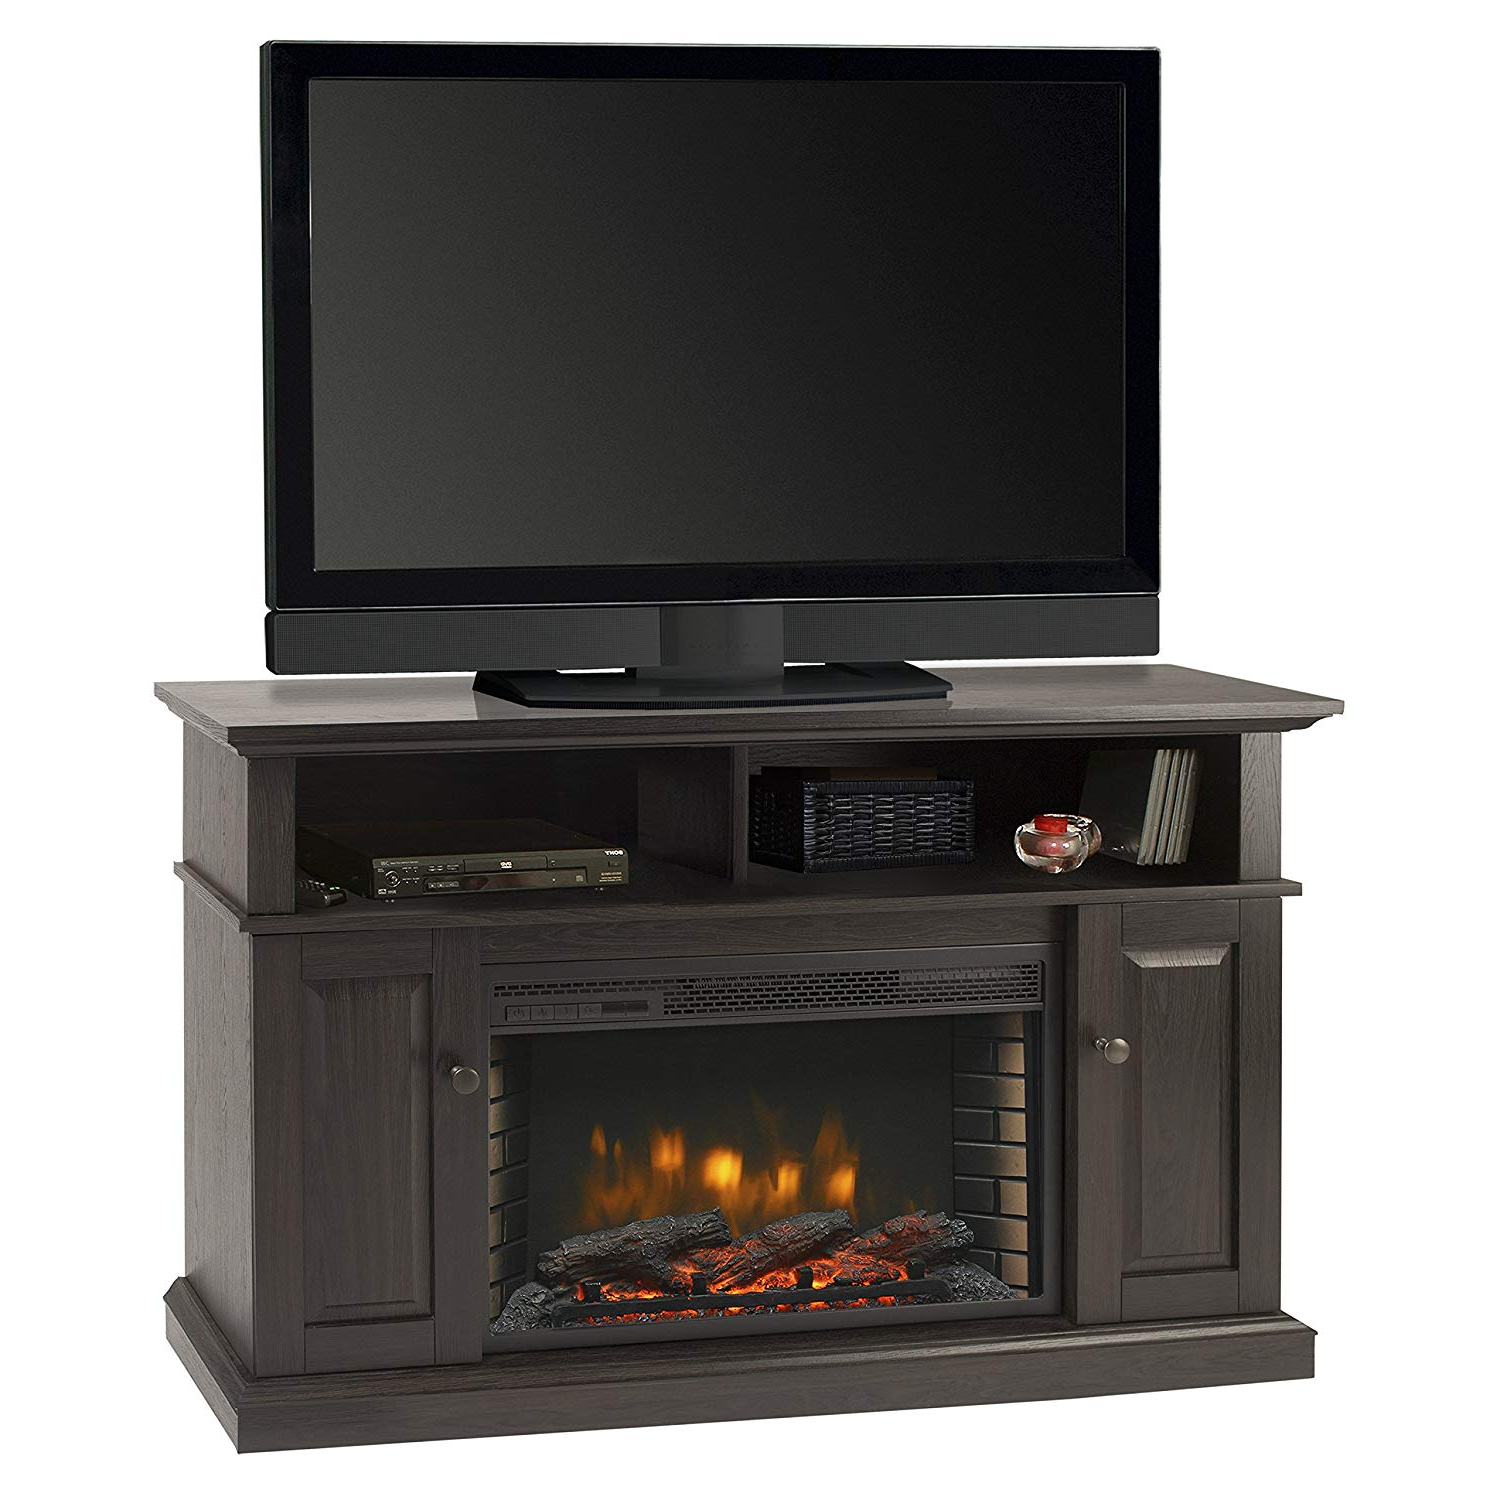 "Kilian Grey 49 Inch Tv Stands Within Popular Amazon: Muskoka Delaney 48"" Media Fireplace Rustic Brown: Home (Gallery 13 of 20)"